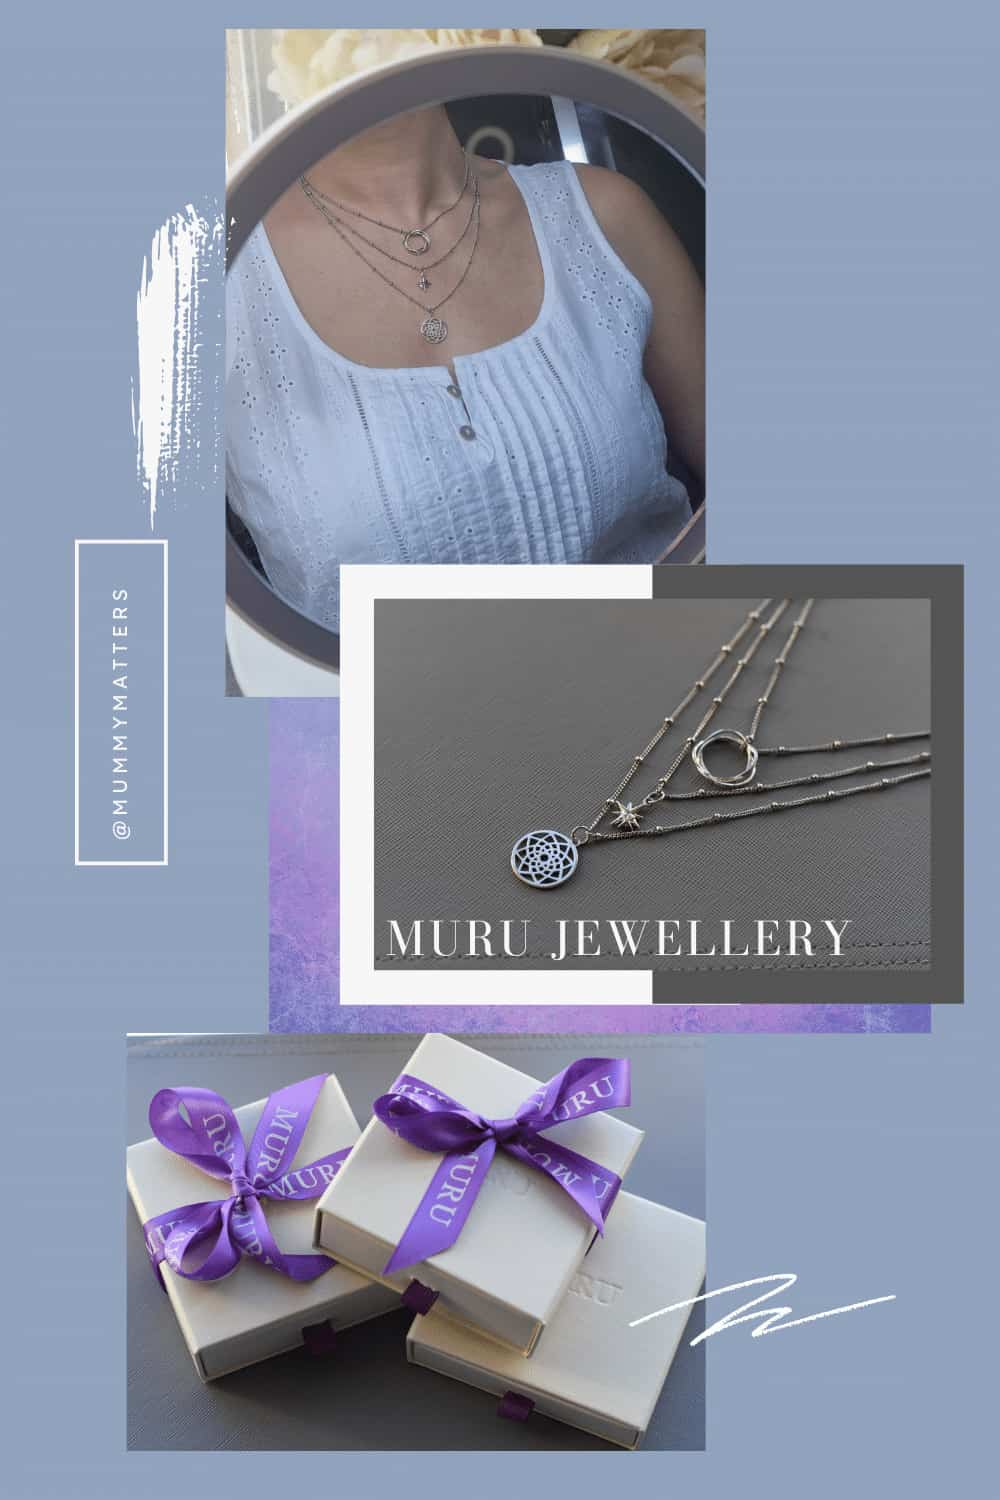 Muru Jewellery is the perfect gift for ladies who love a gift with meaning, I chose three necklaces for a layered look and the quality is outstanding.